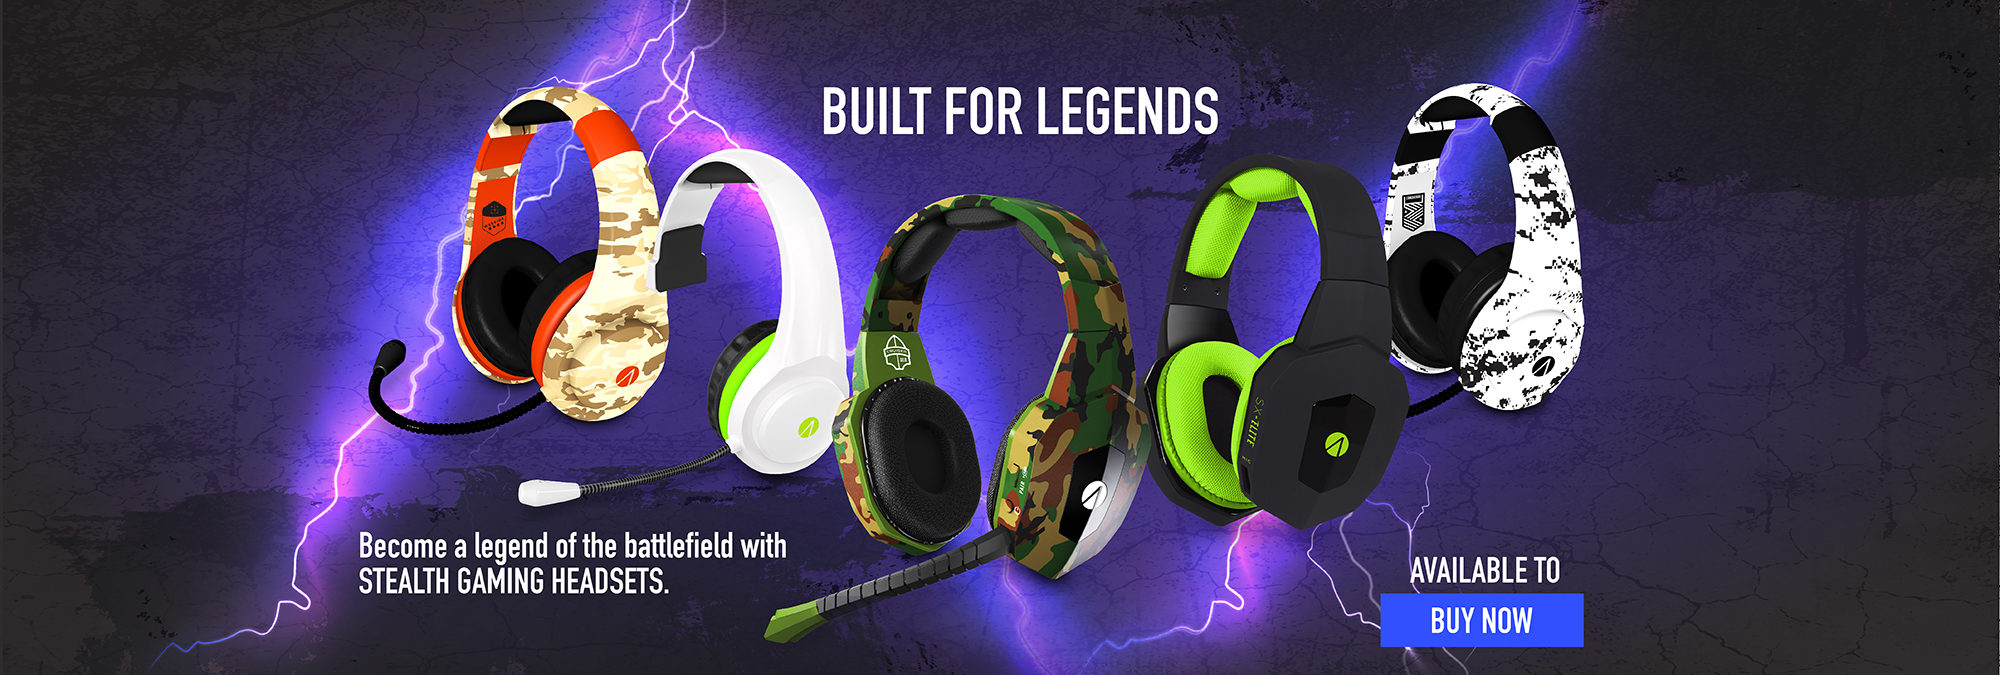 Legendary SX and XP Stealth Headsets